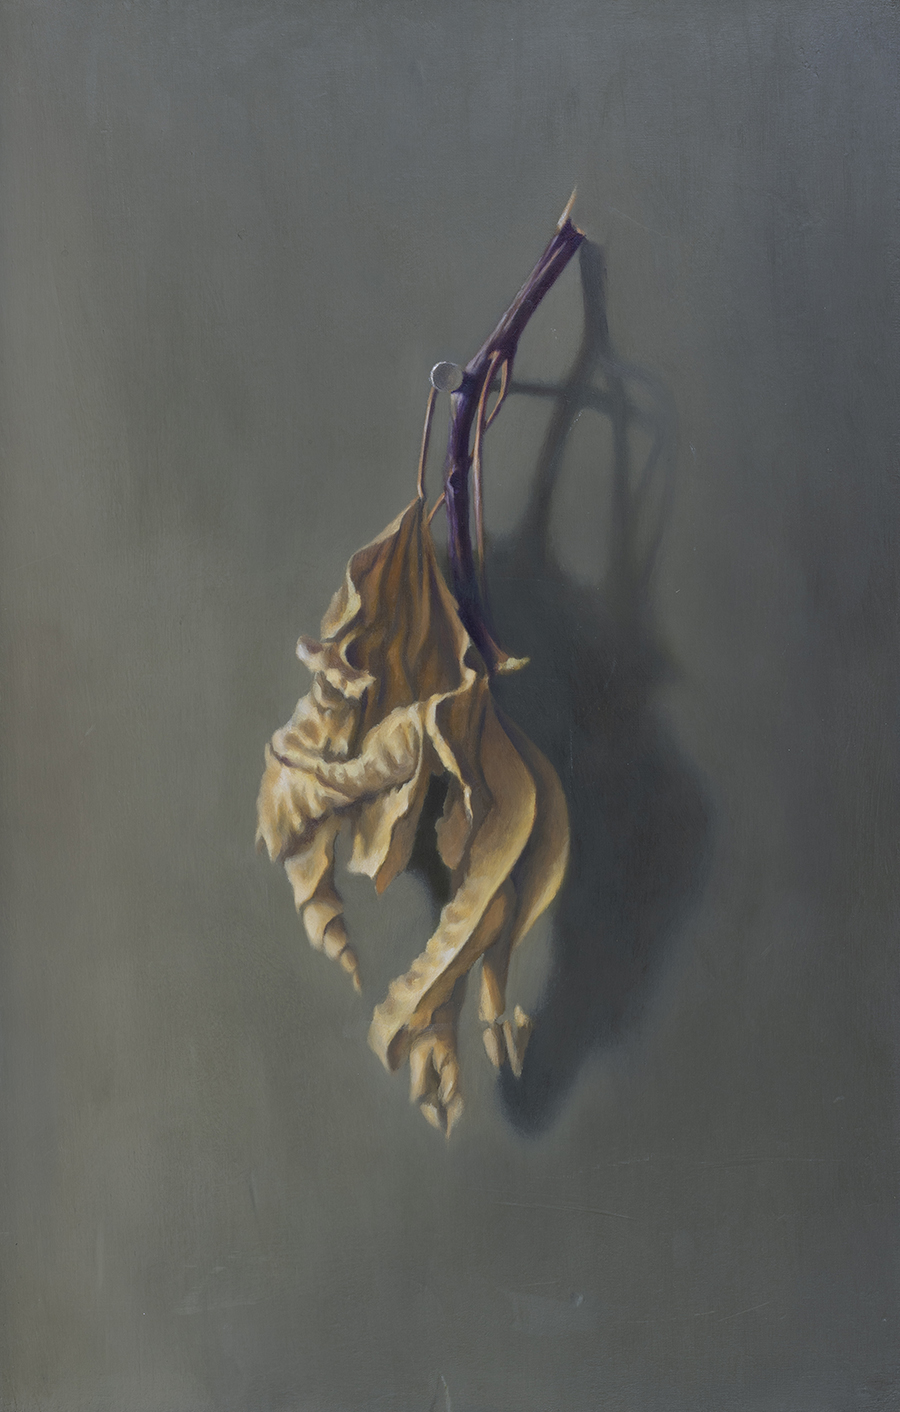 Under his Fig, 2016, oil on canvas mounted on wood, 44x28 cm